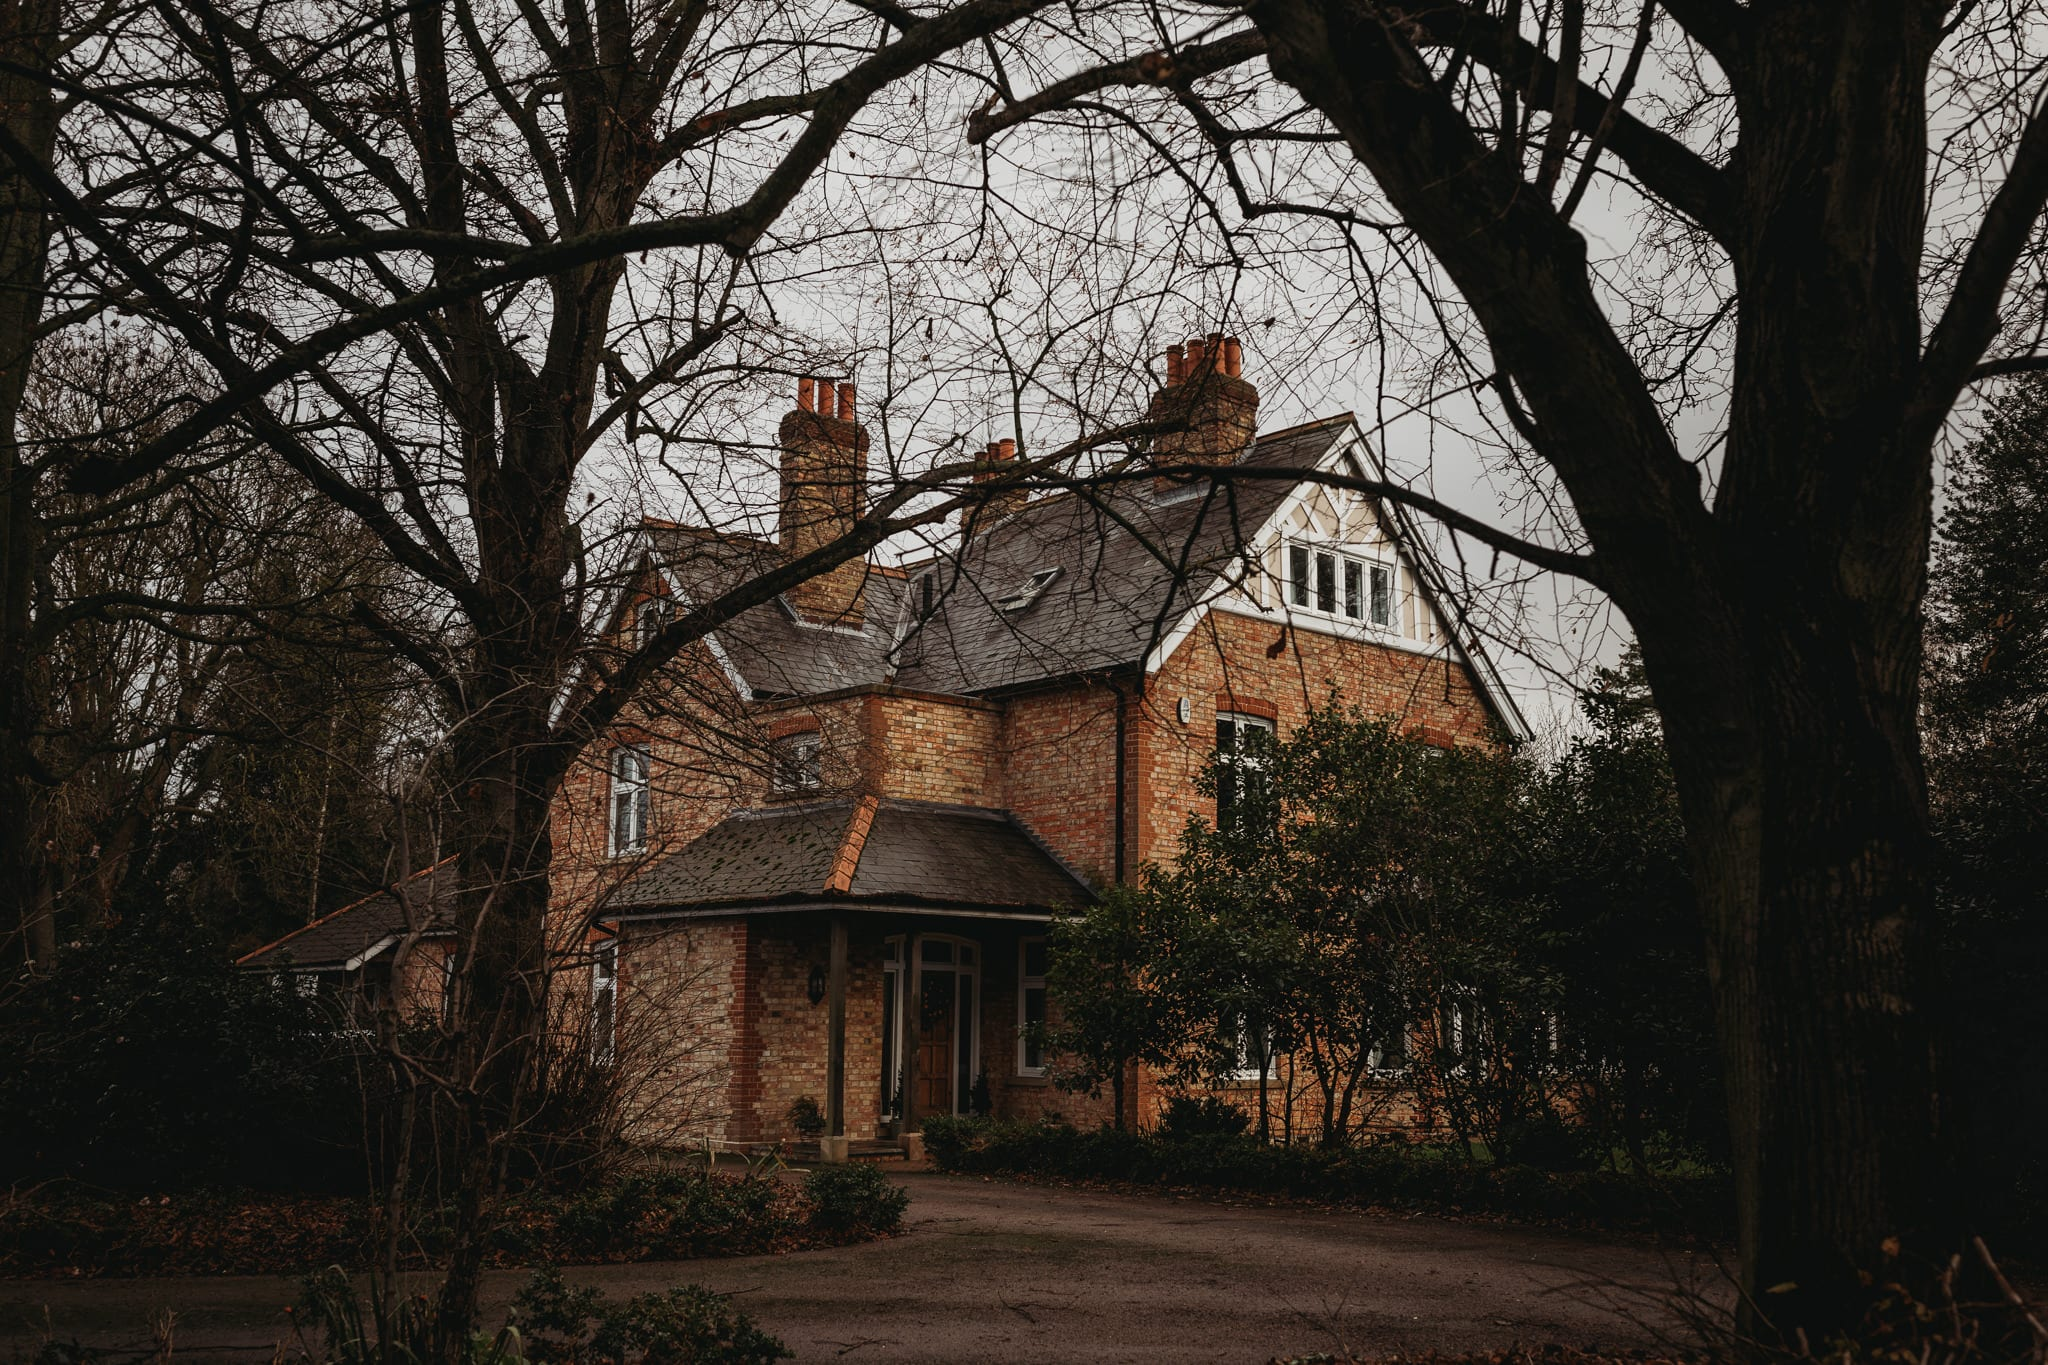 house surrounded by trees on a cloudy autumn day